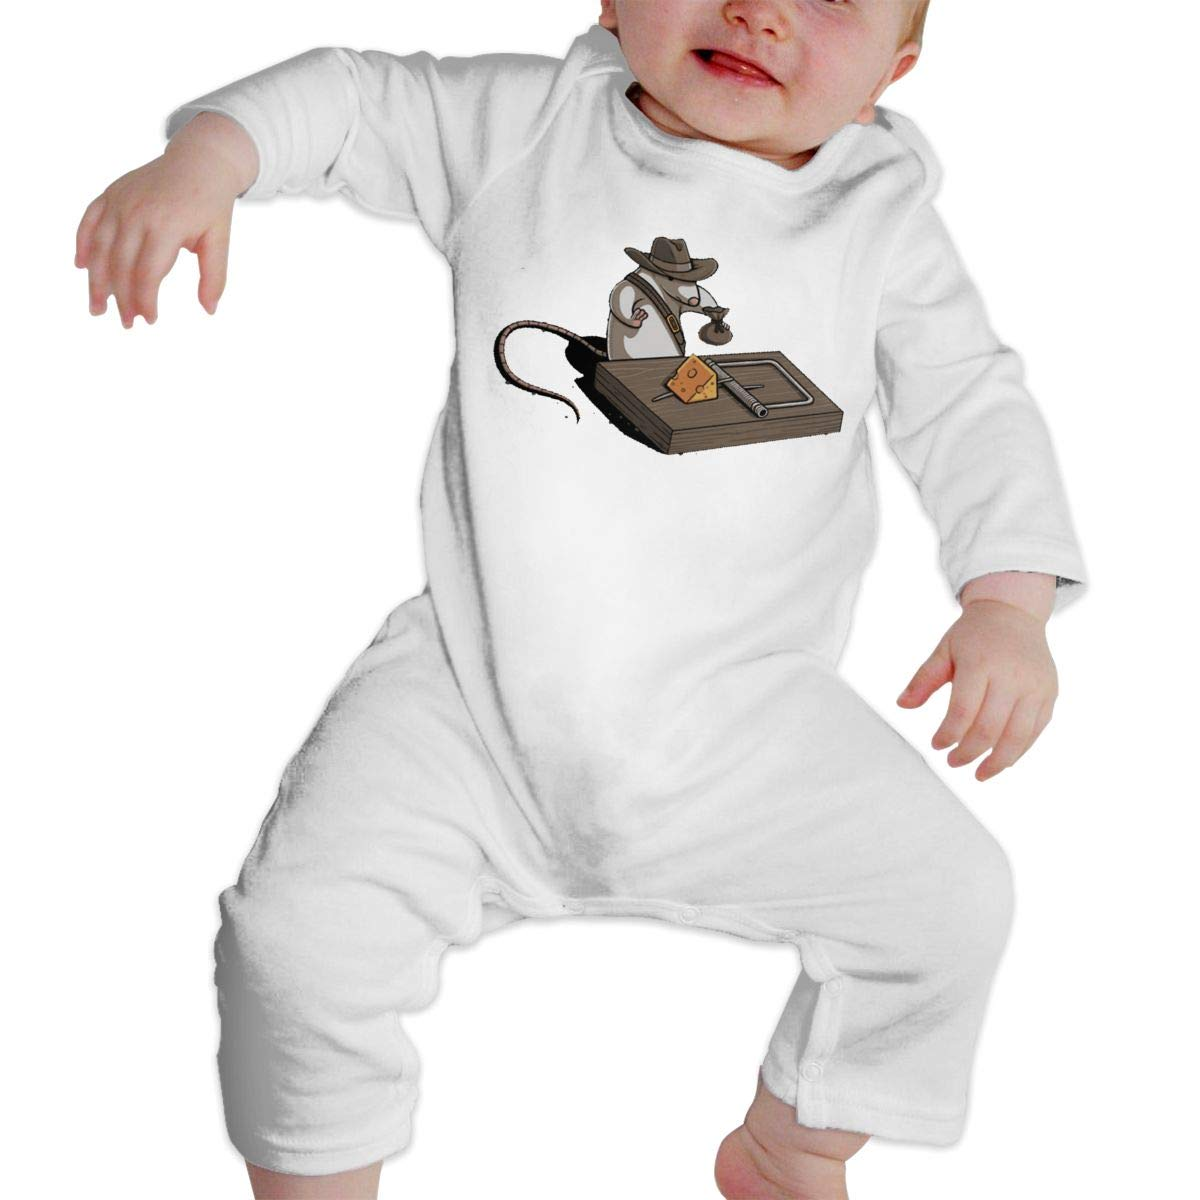 Mouse Newborn Baby Boy Girl Romper Jumpsuit Long Sleeve Bodysuit Overalls Outfits Clothes